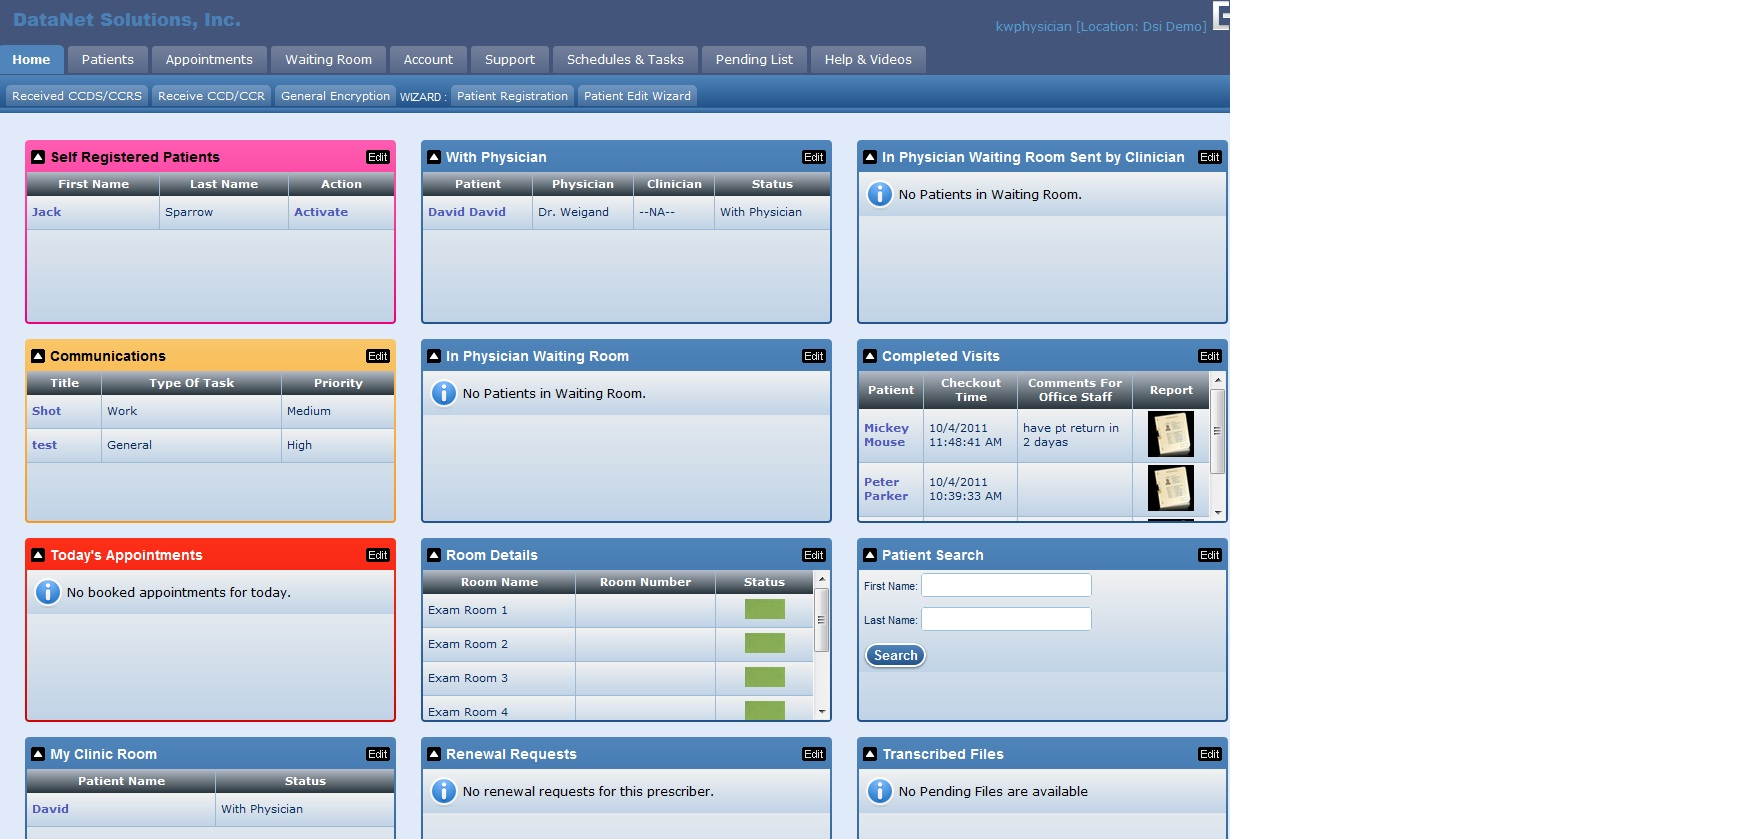 Physician home page